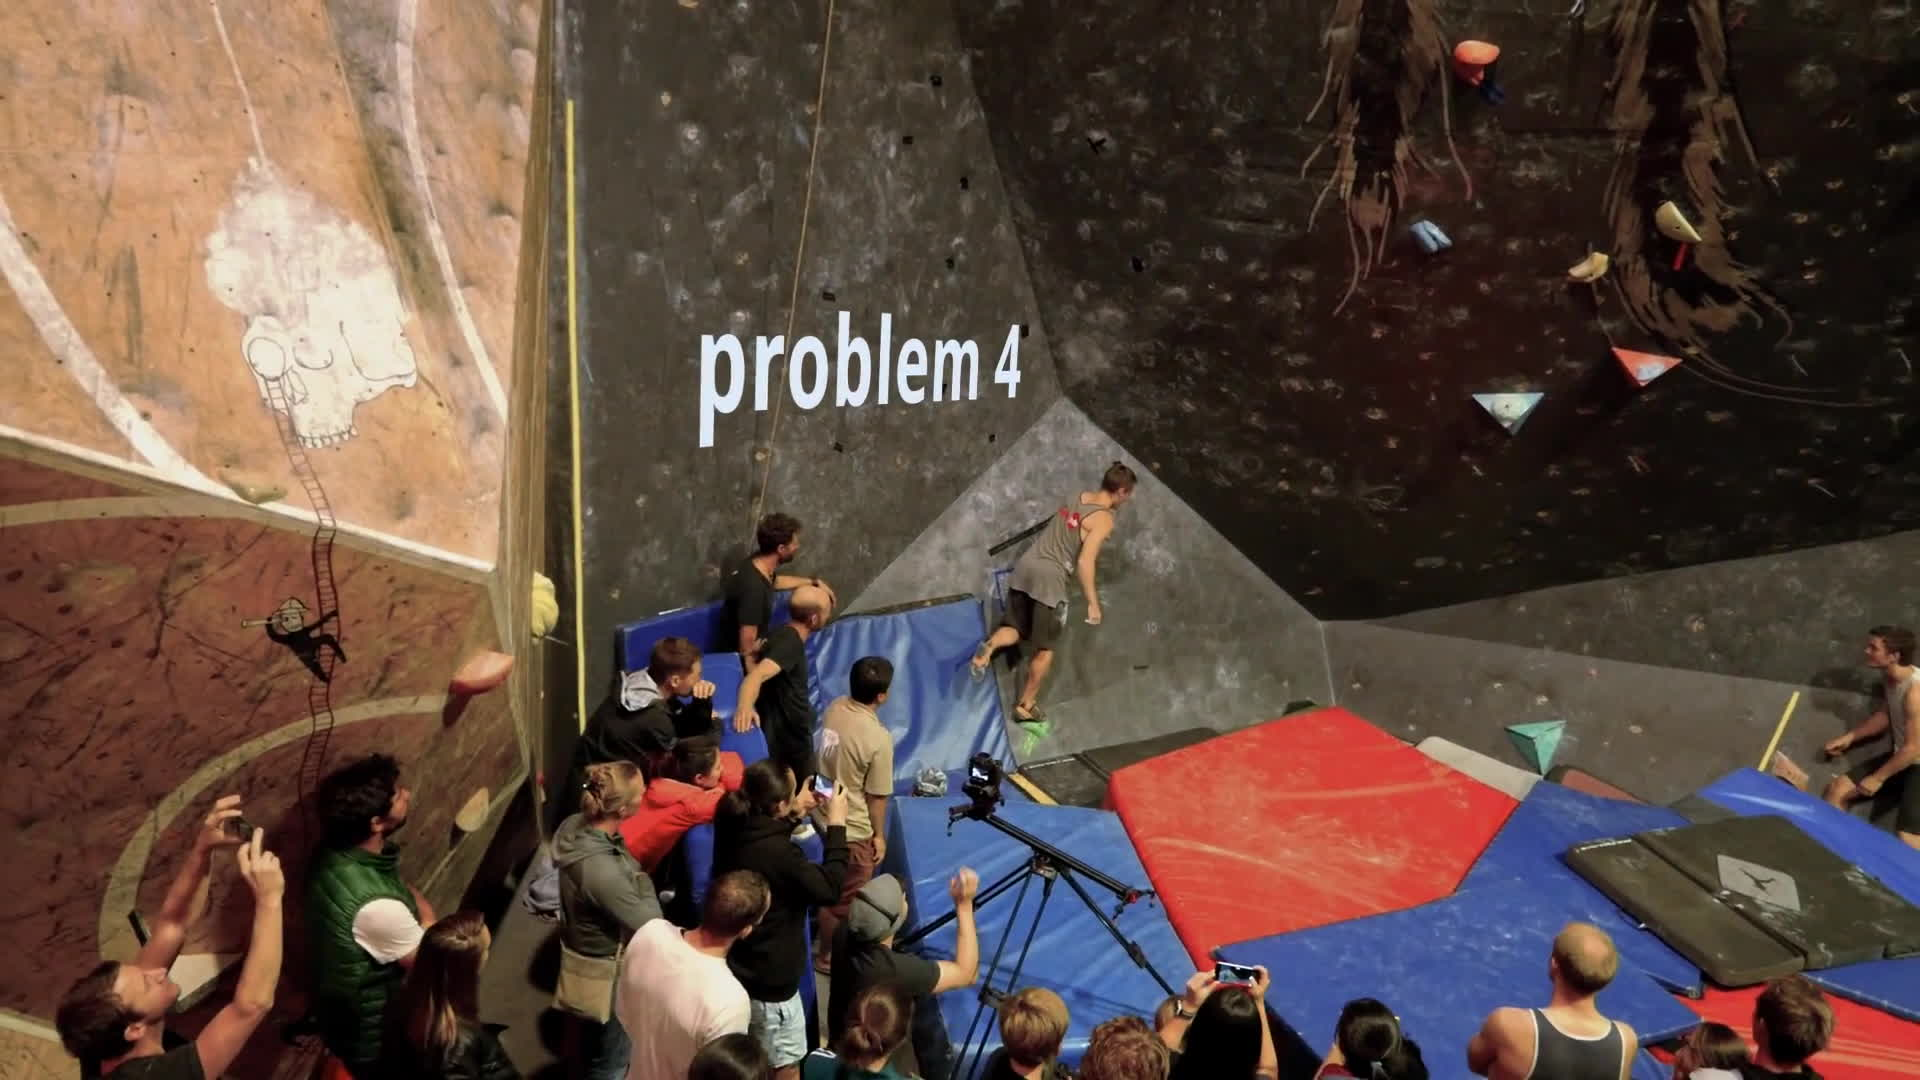 climbing competition, indoor climbing, rock climbing, City Summit Bouldering Comp May 2015 GIFs